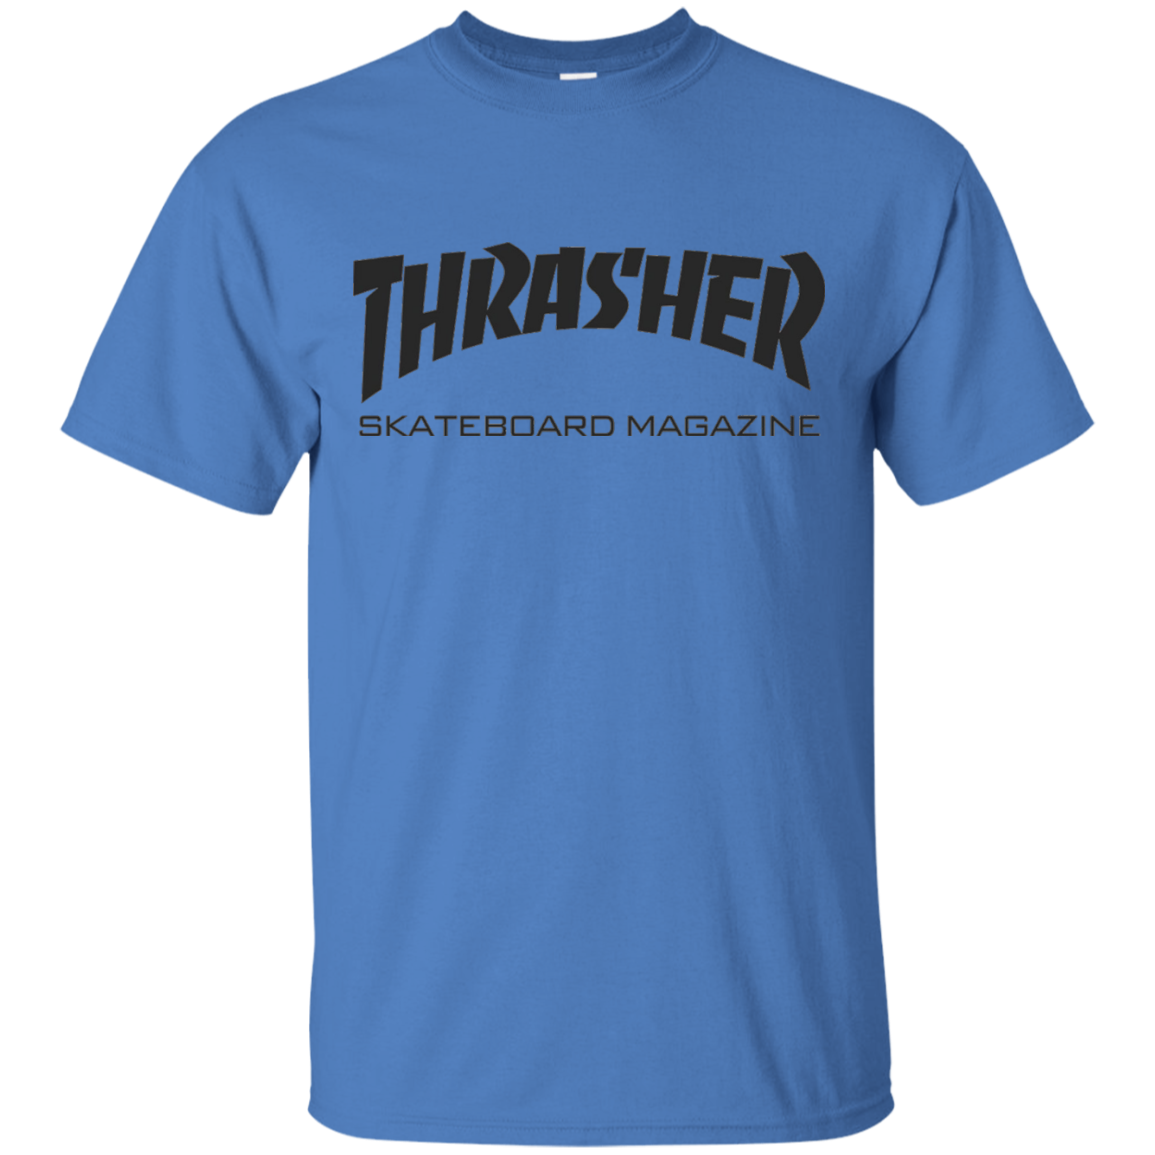 thrasher shirt